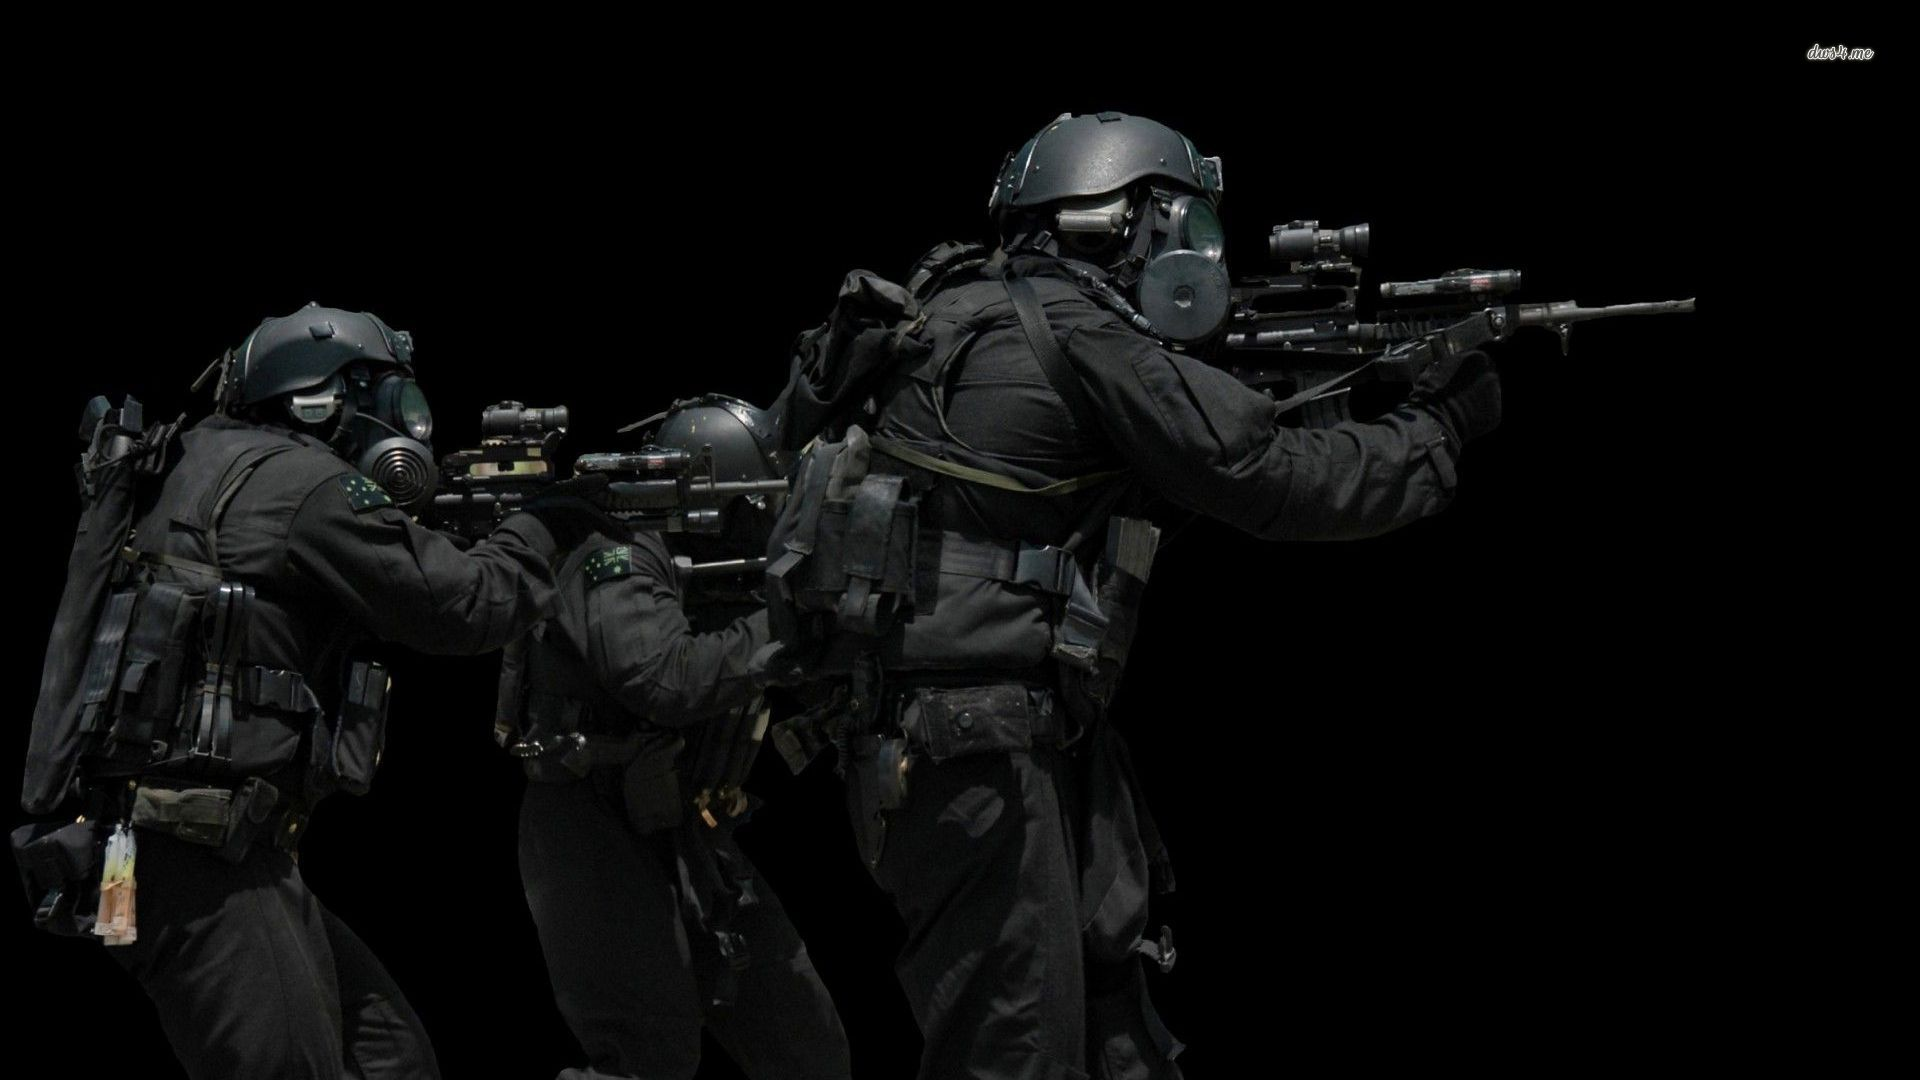 Cool Swat Wallpapers - REuuN.com